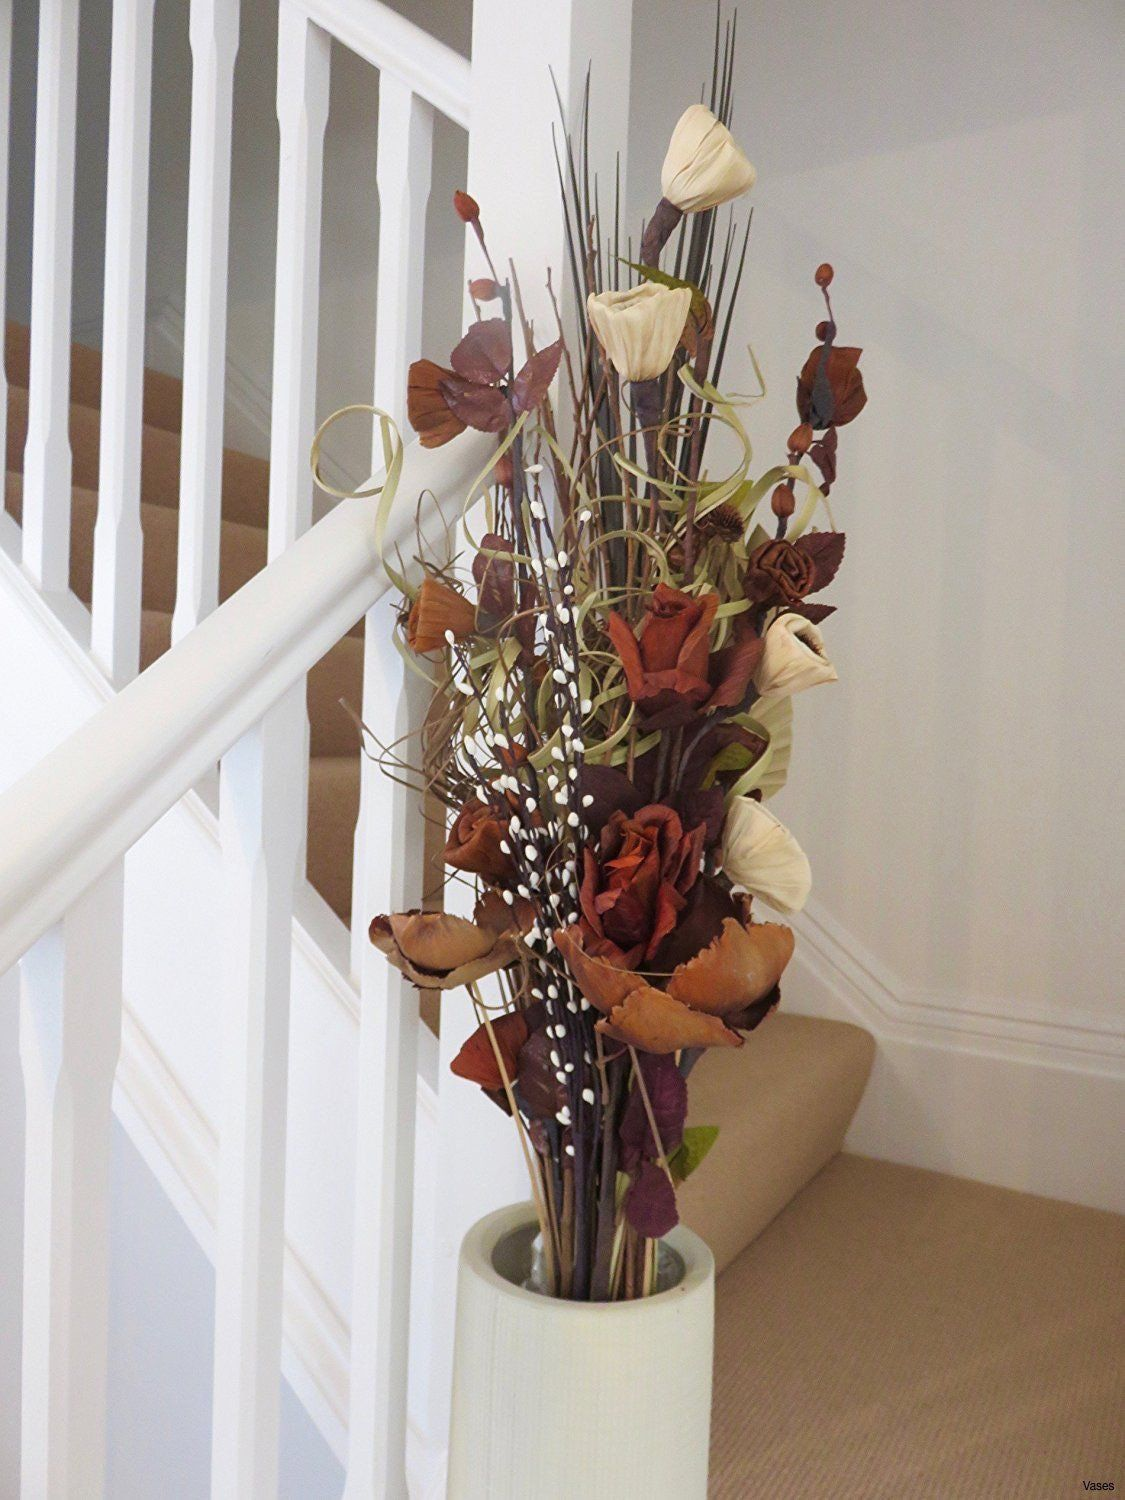 Anchor Decoration Ideas Lovely 20 Re Mended Tall Floor Vase Decoration Ideas Floor Flower Vases Tall Floor Vases Glass Vase Decor #tall #floor #vases #for #living #room